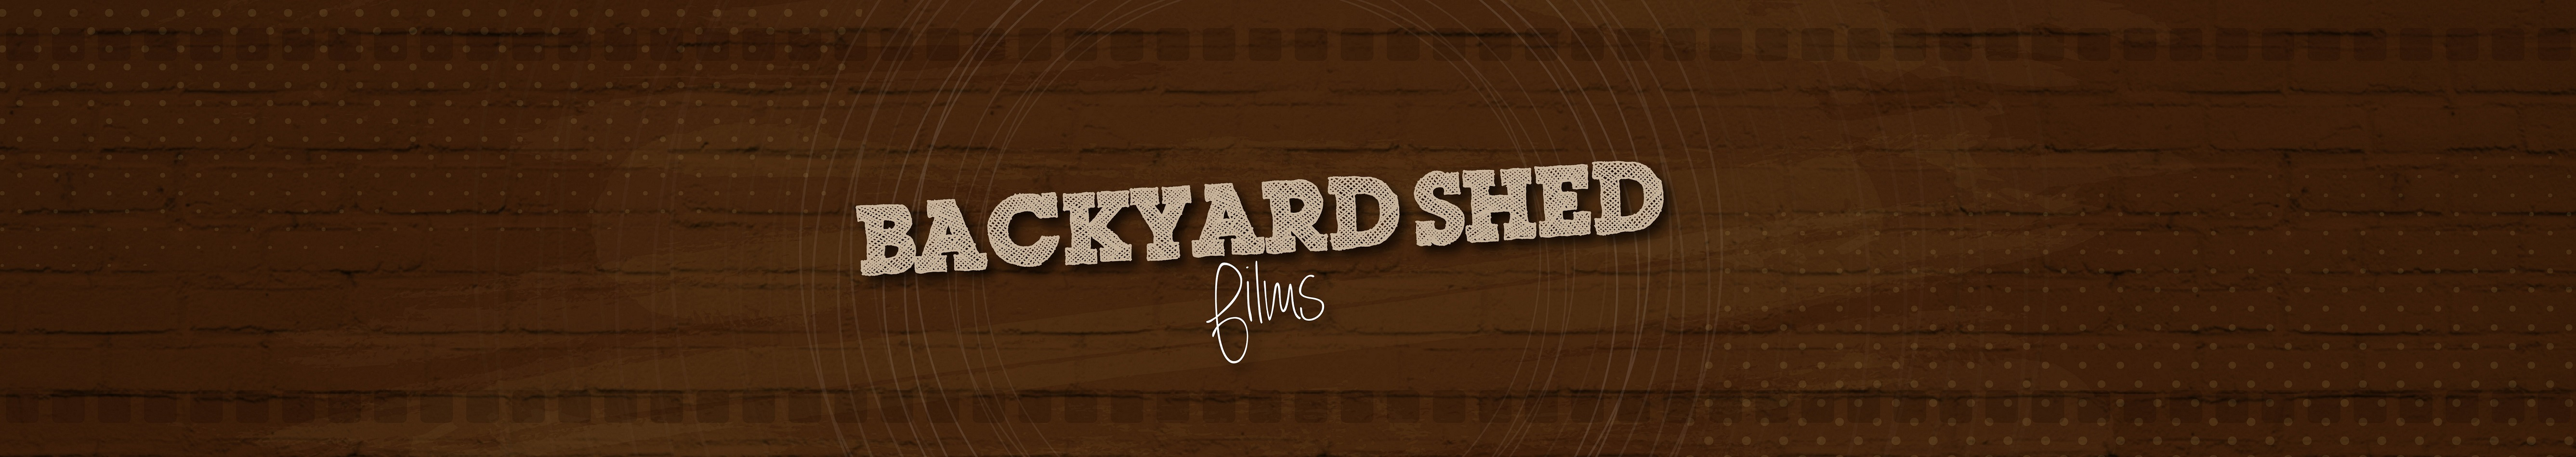 YouTube Channel | Backyard Shed Films